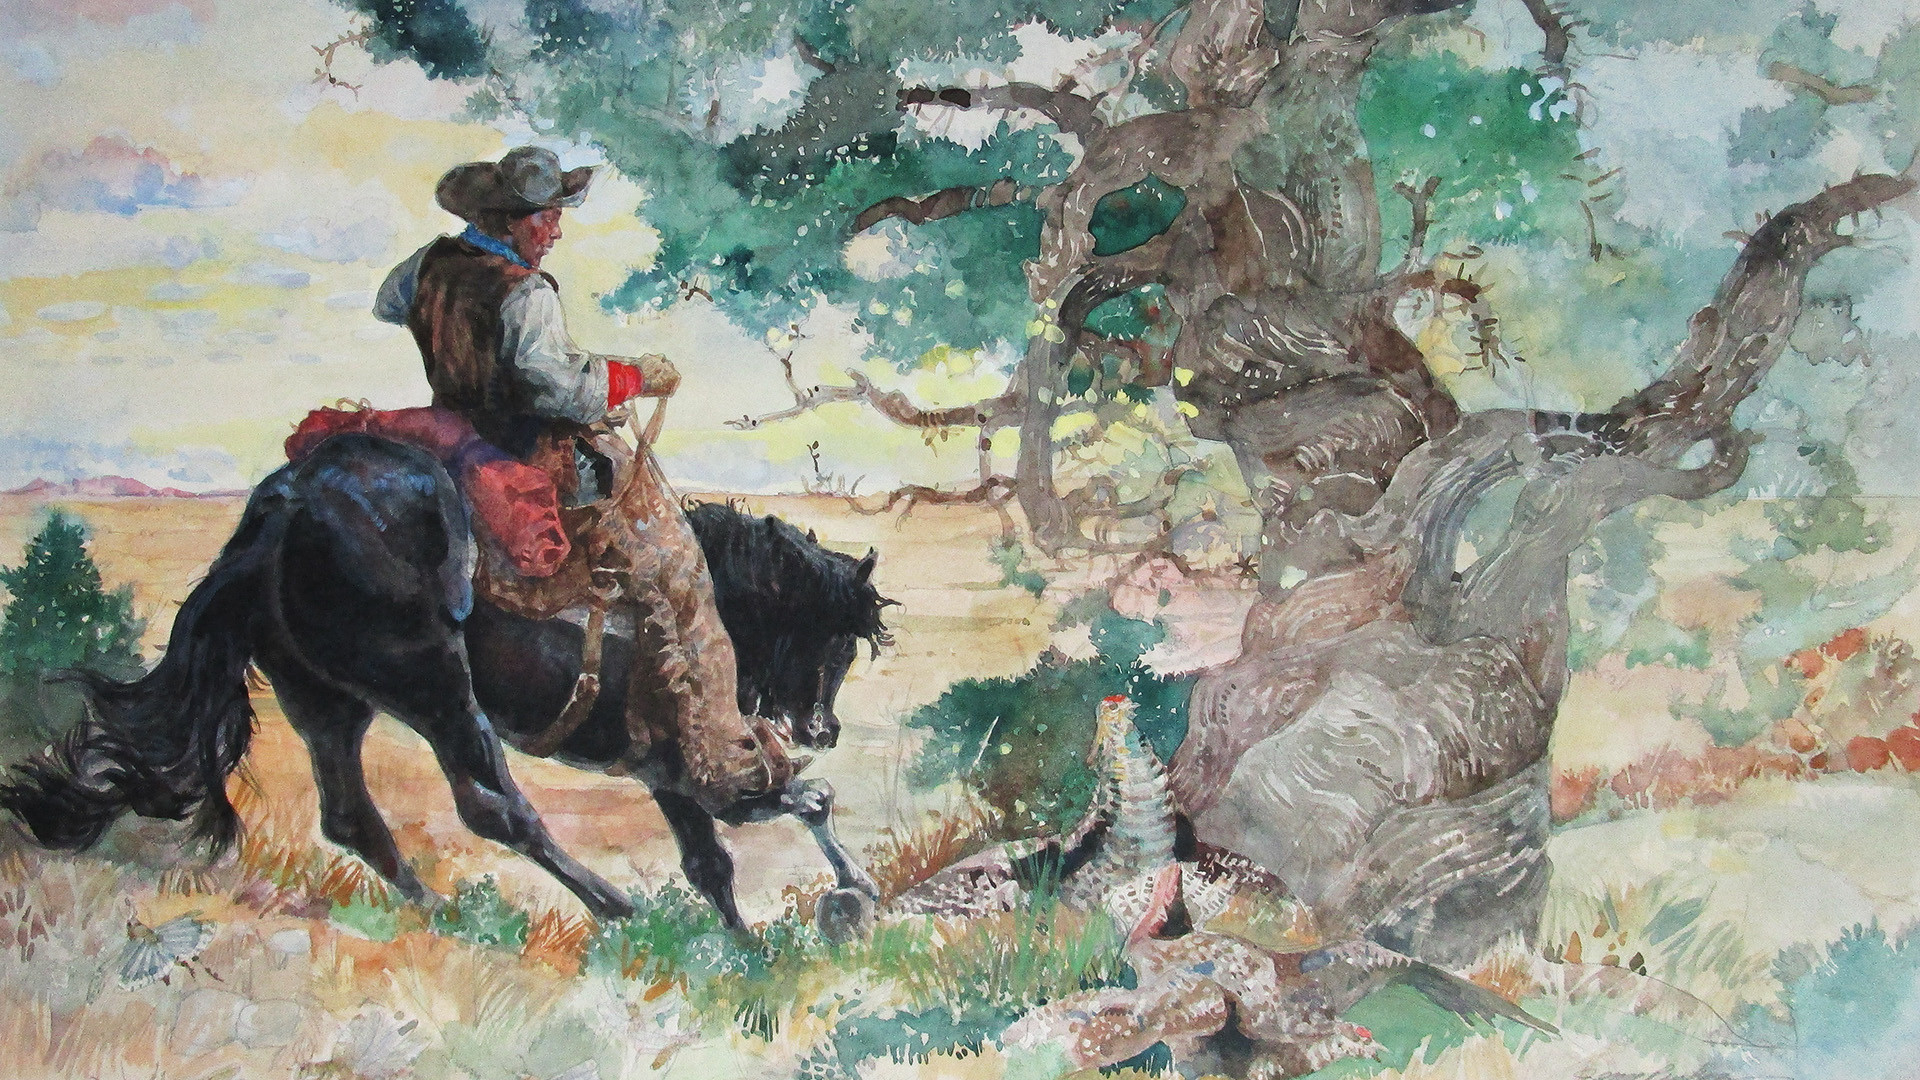 First Light, from Black Cowboys, Wild Horses, 1997, by Jerry Pinkney (Courtesy of the artist)